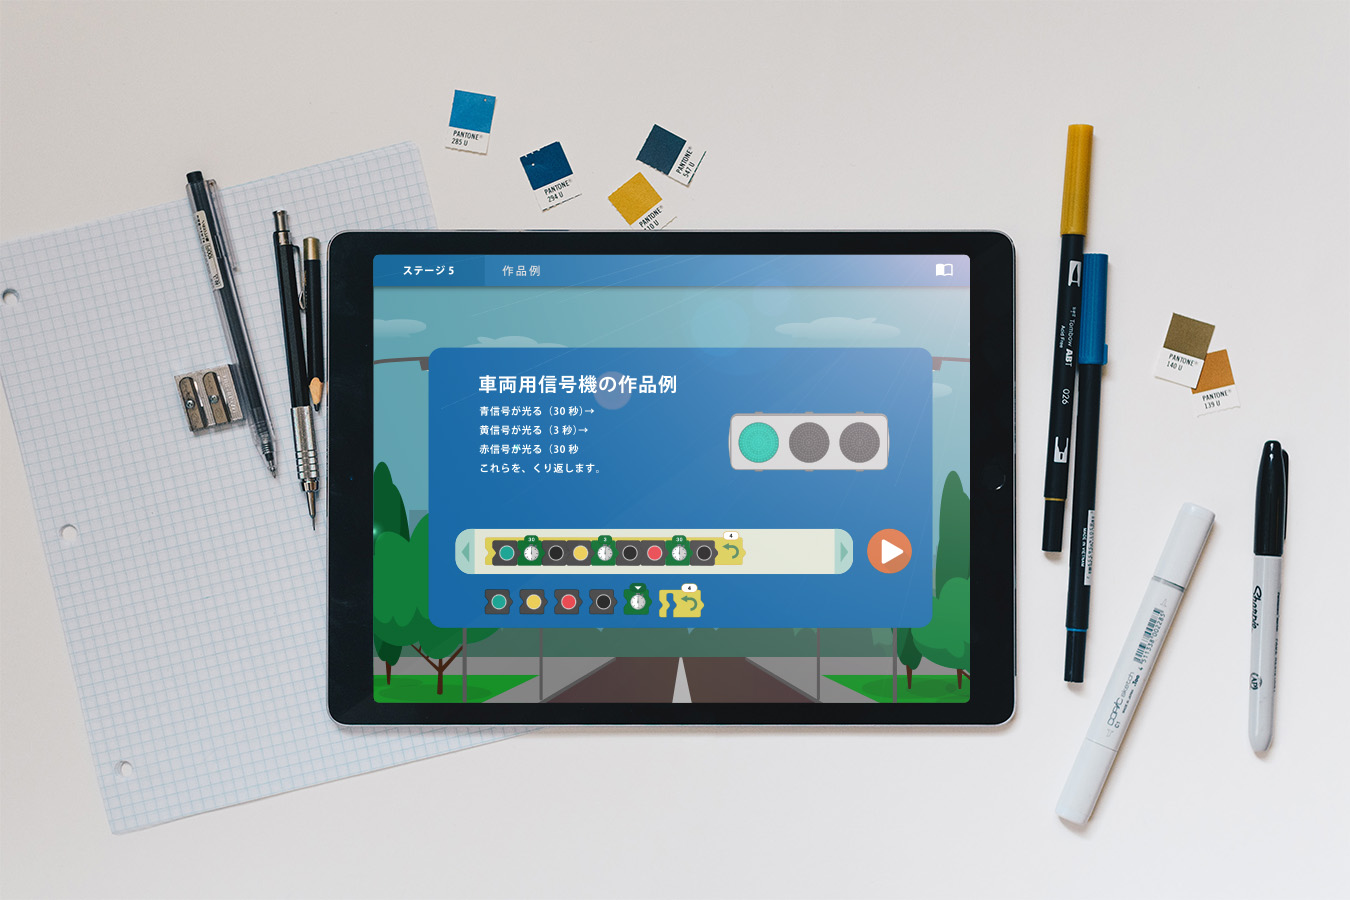 YOKOSHIKI Programming Education App